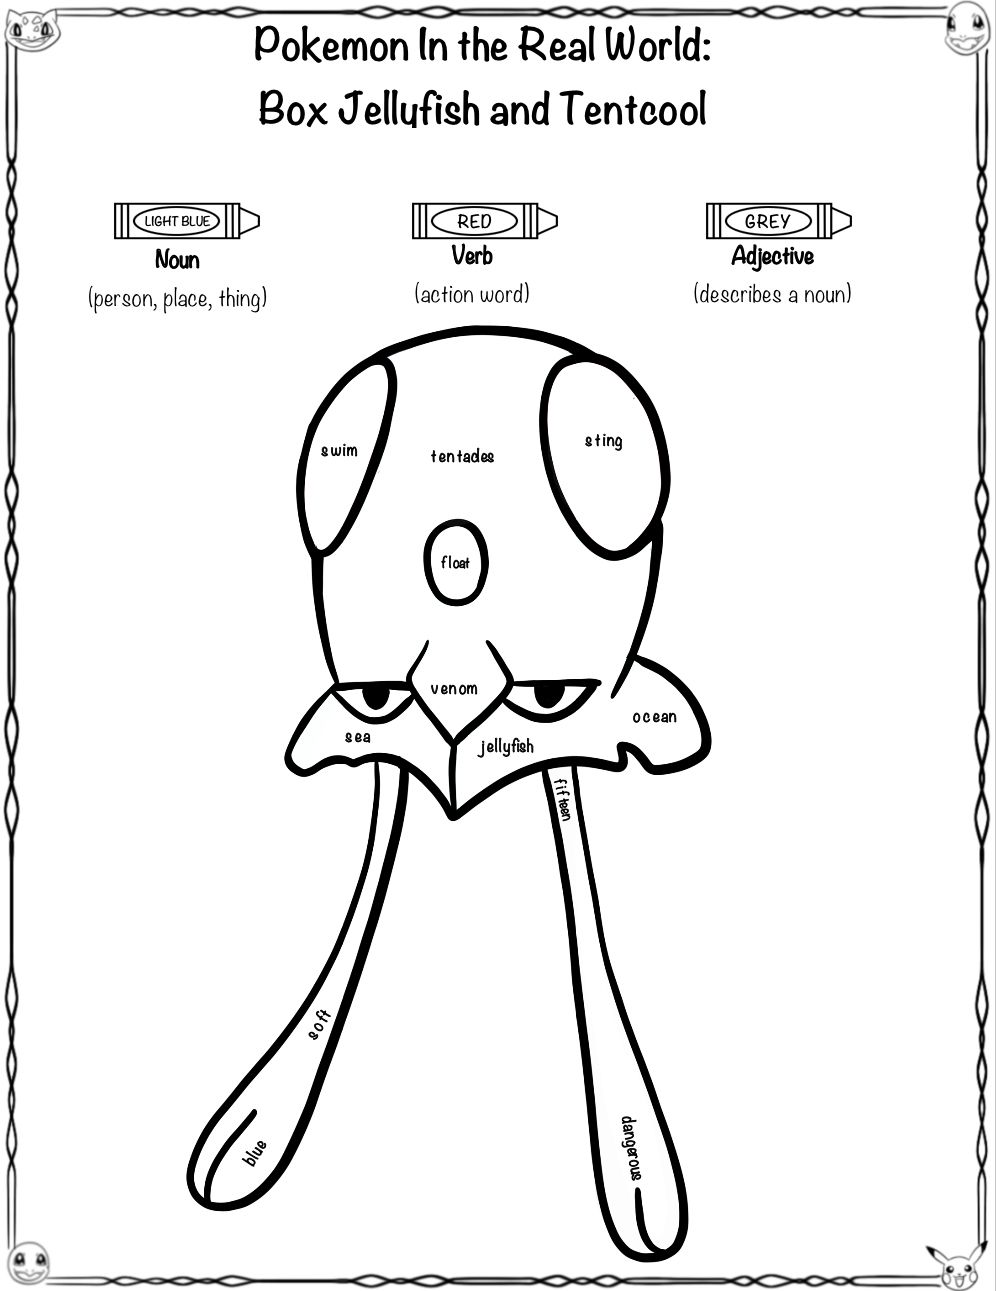 Pokemon Close Read And Worksheets Activities Box Jellyfish And Tentacool Worksheets For Kids Fun Worksheets For Kids Kids Fun Learning [ 1291 x 996 Pixel ]